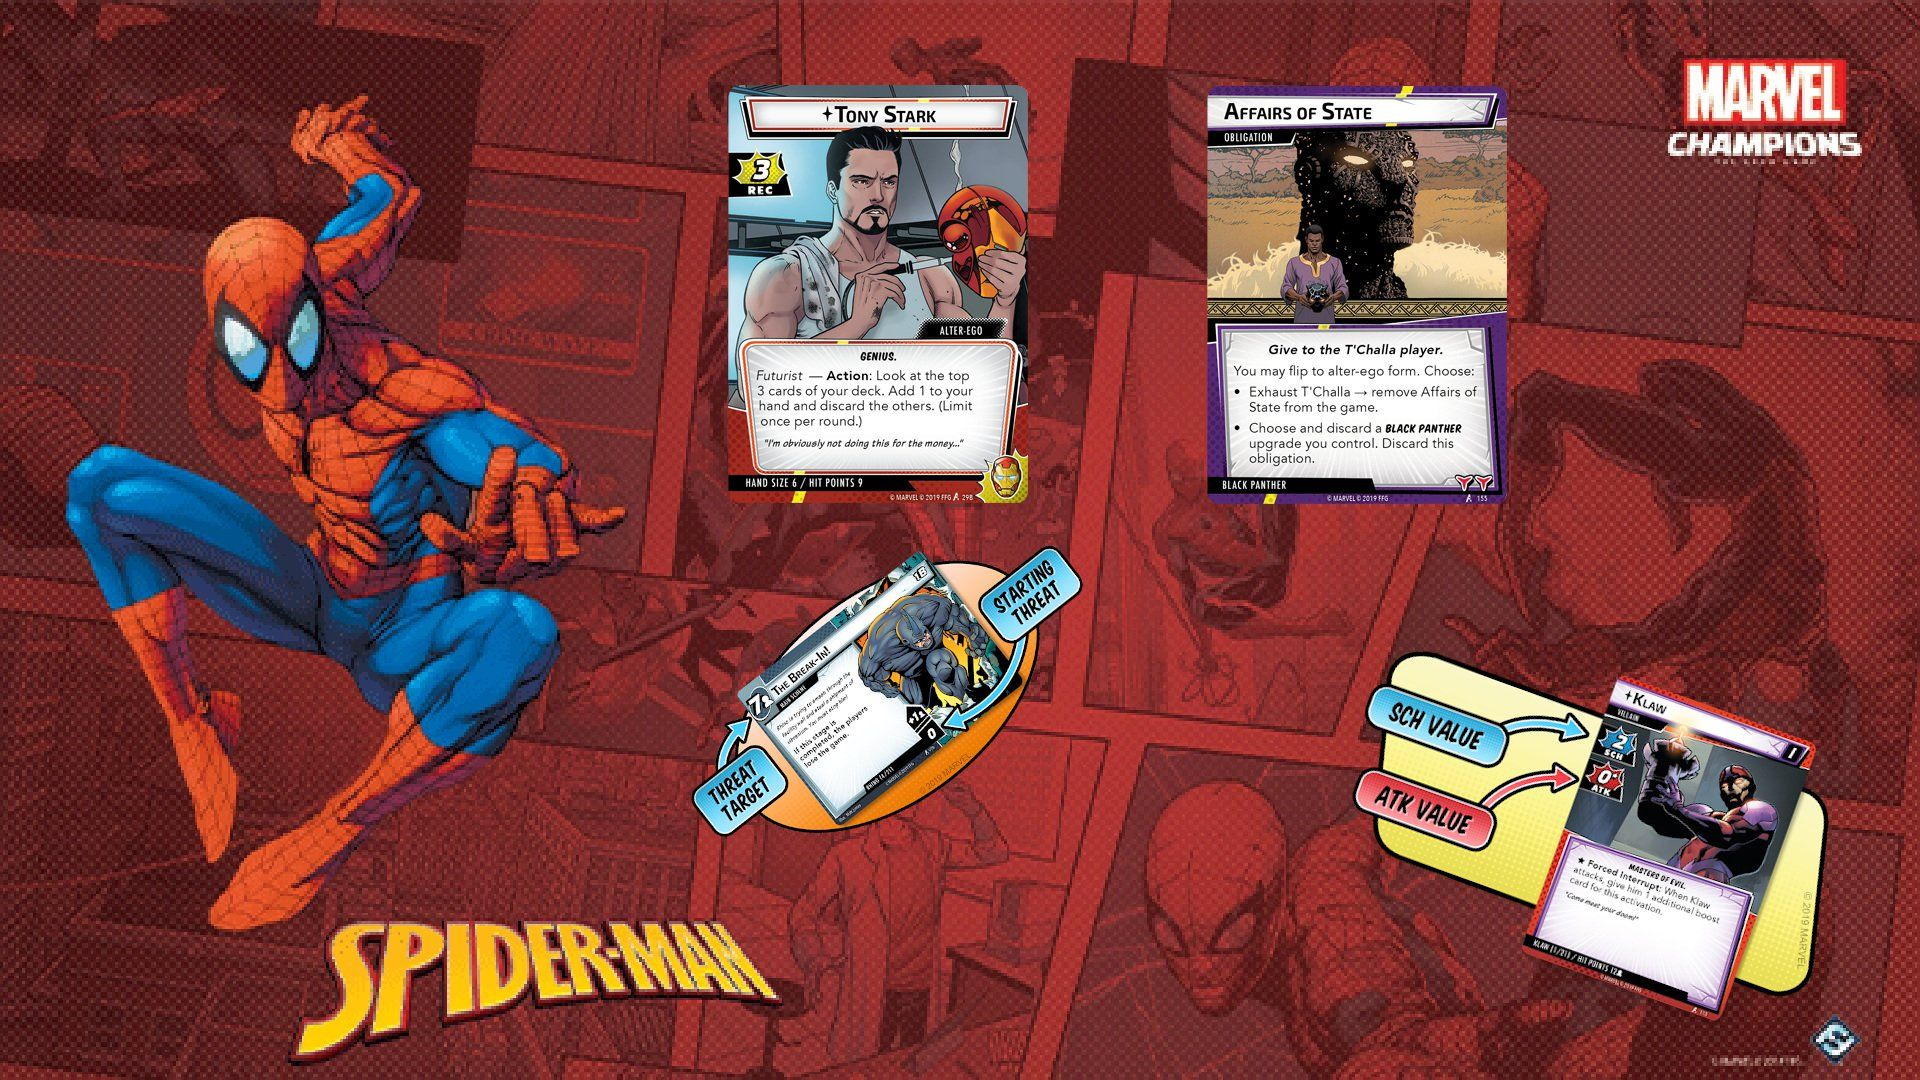 Marvel champions coop card game announced marvel